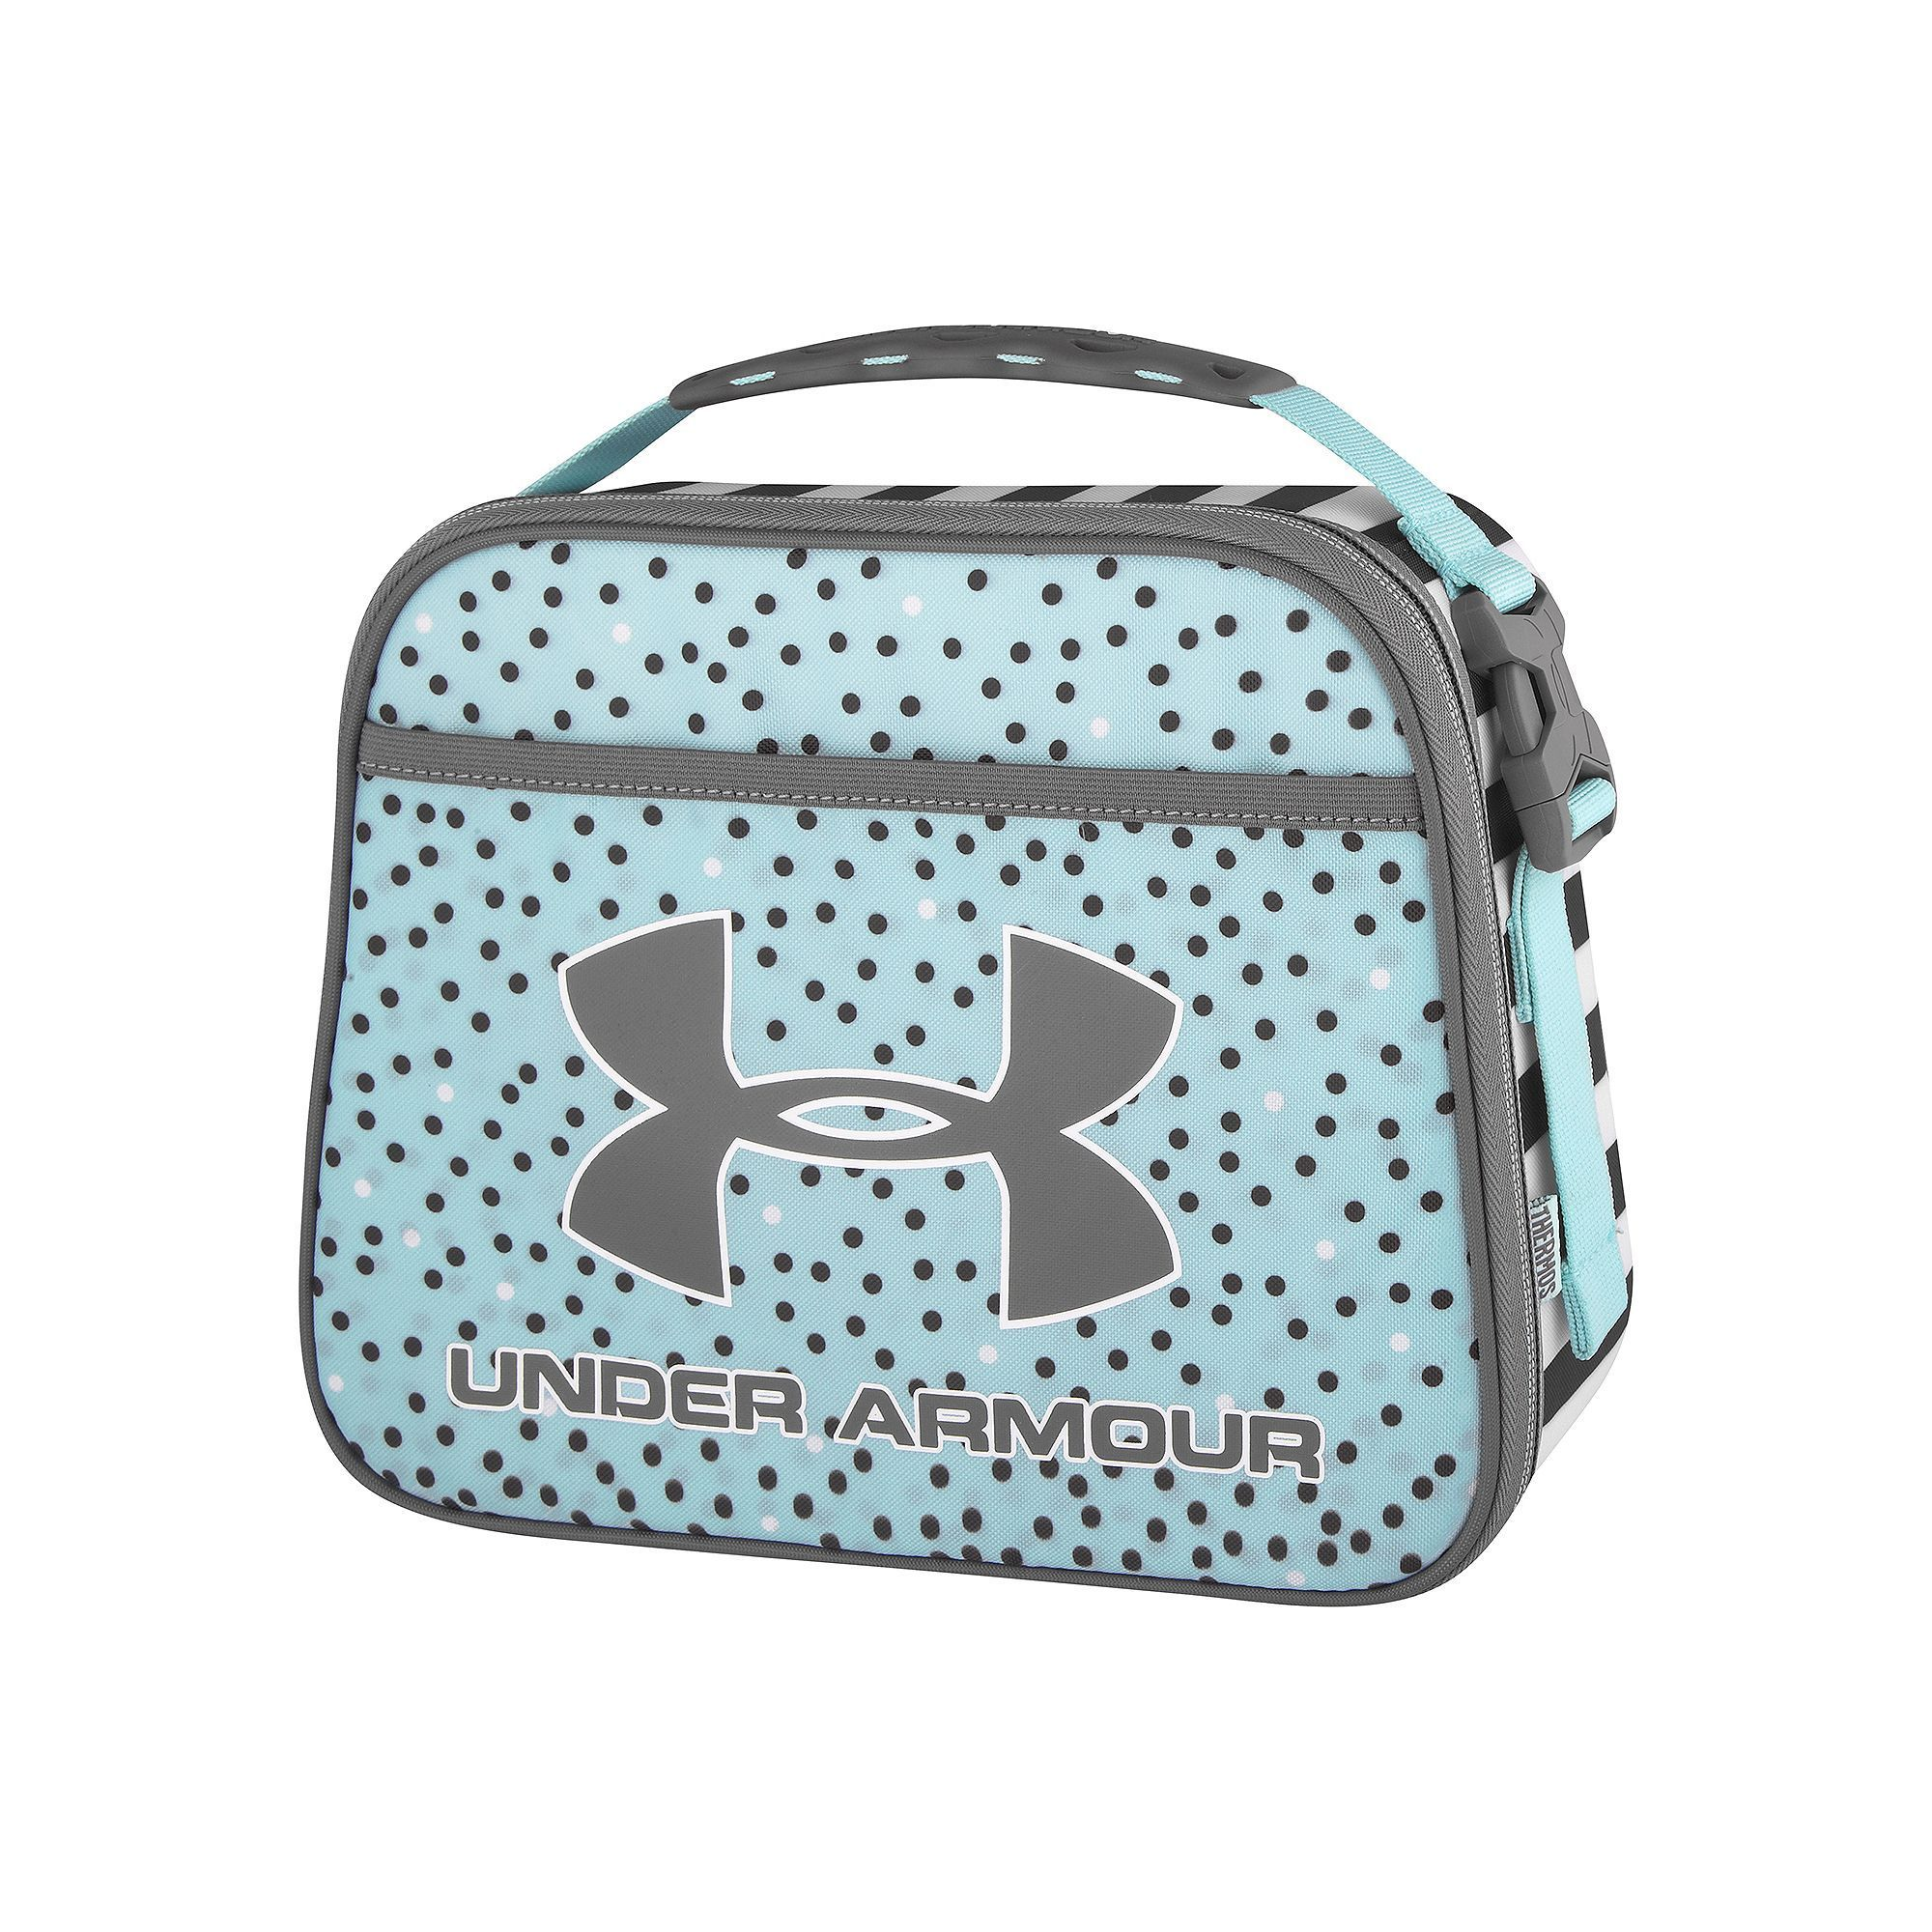 c27d21b4c166 Under Armour Girls Lunch Box in 2019